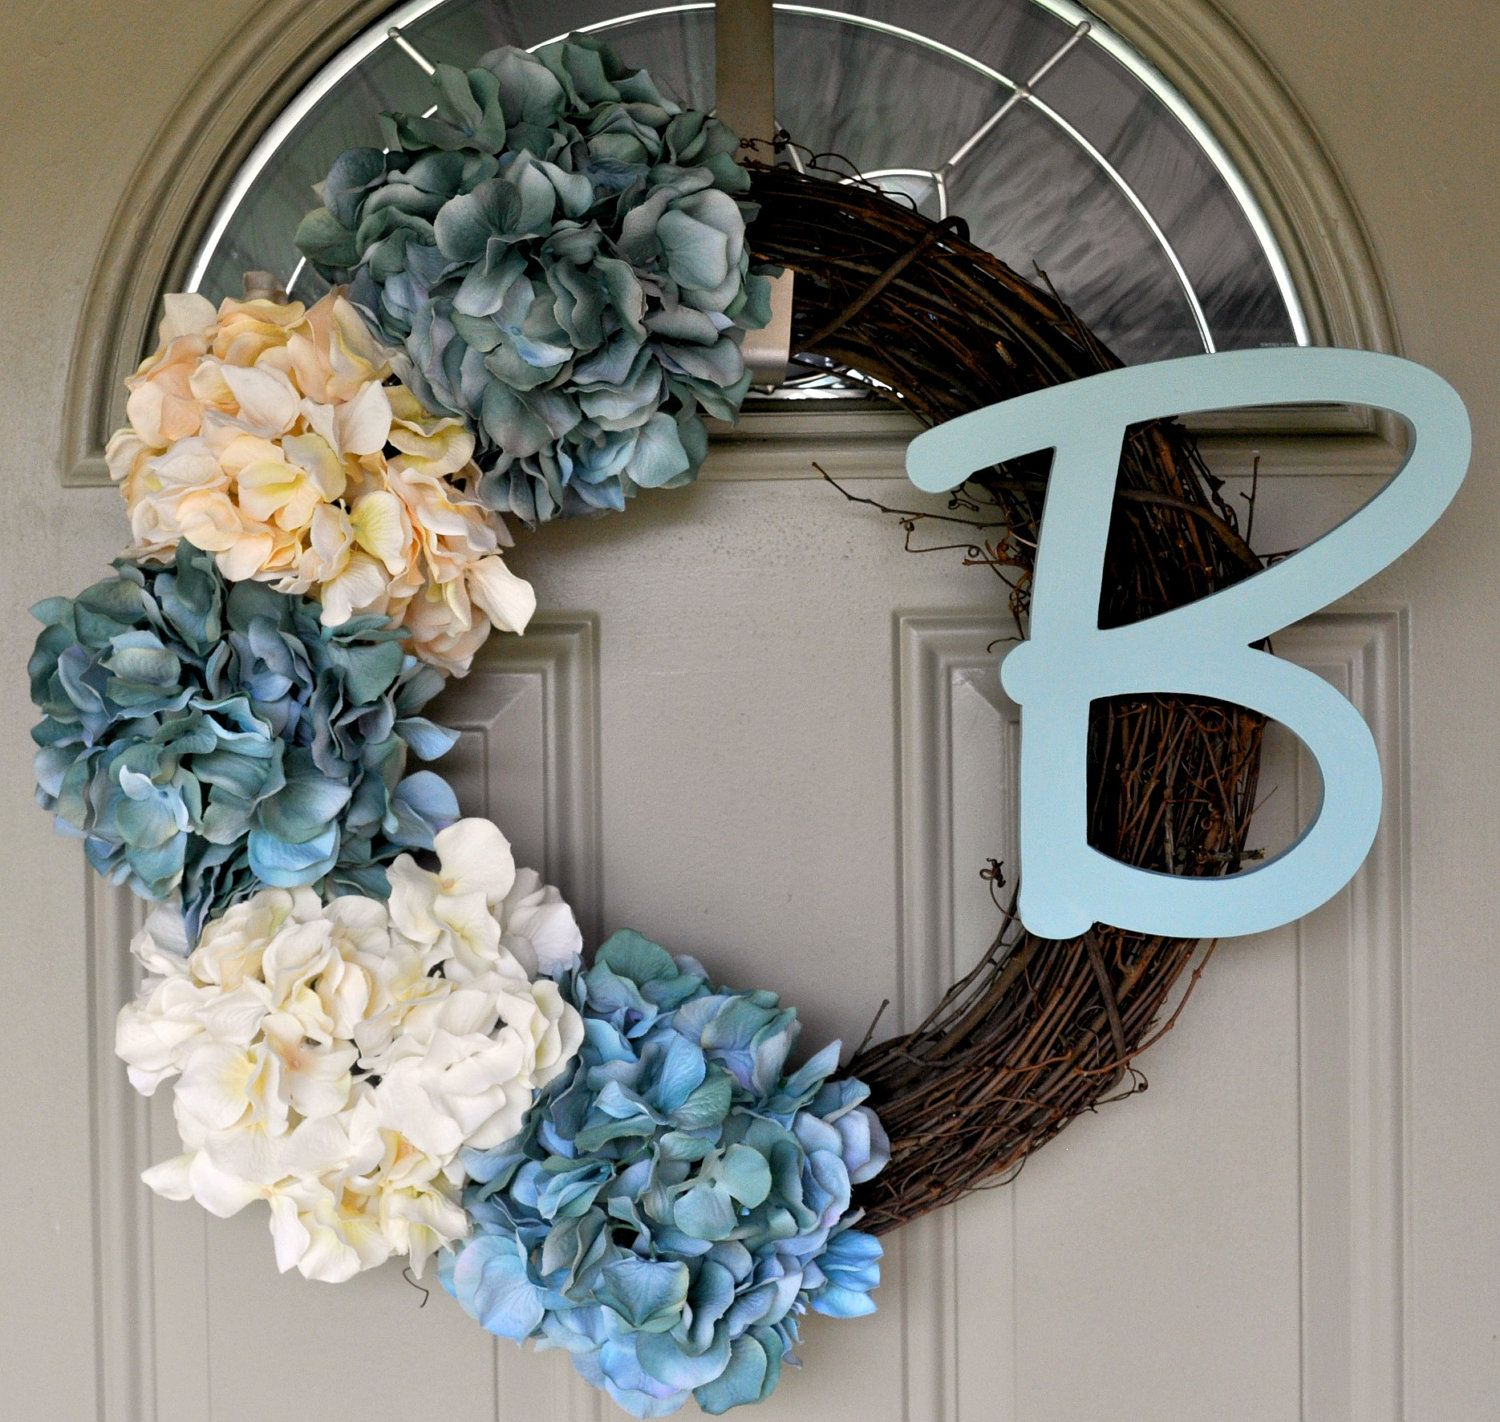 Backyard Ideas For Spring Decorating 6 Tips To Make: Hydrangea Wreath. Easy DIY Project. Perfect Summer Wreath